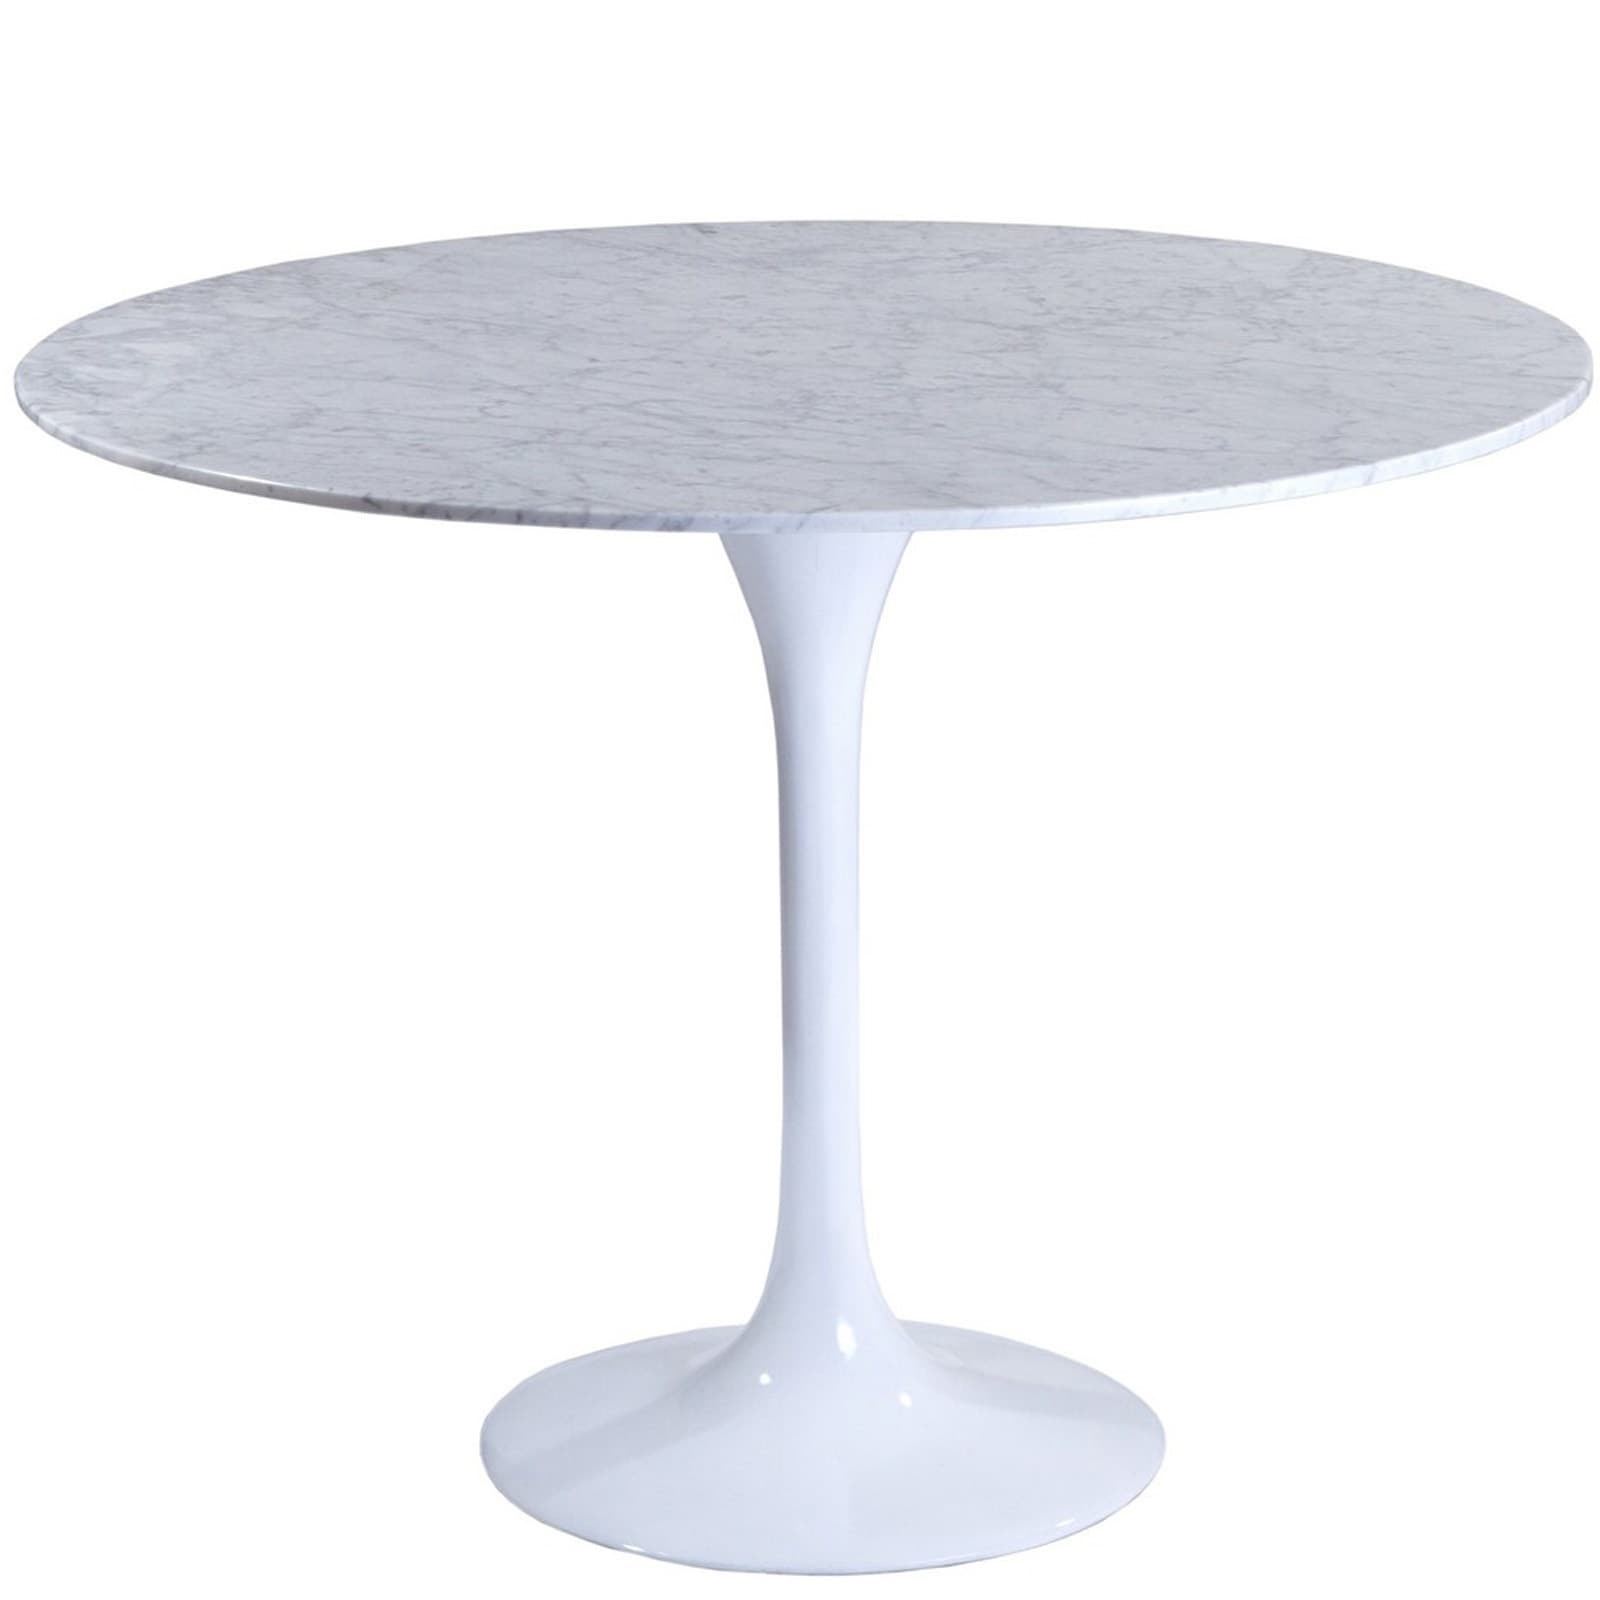 Eero Saarinen Style 40 Inch White Marble Top Tulip Dining Table   Free  Shipping Today   Overstock   14230464